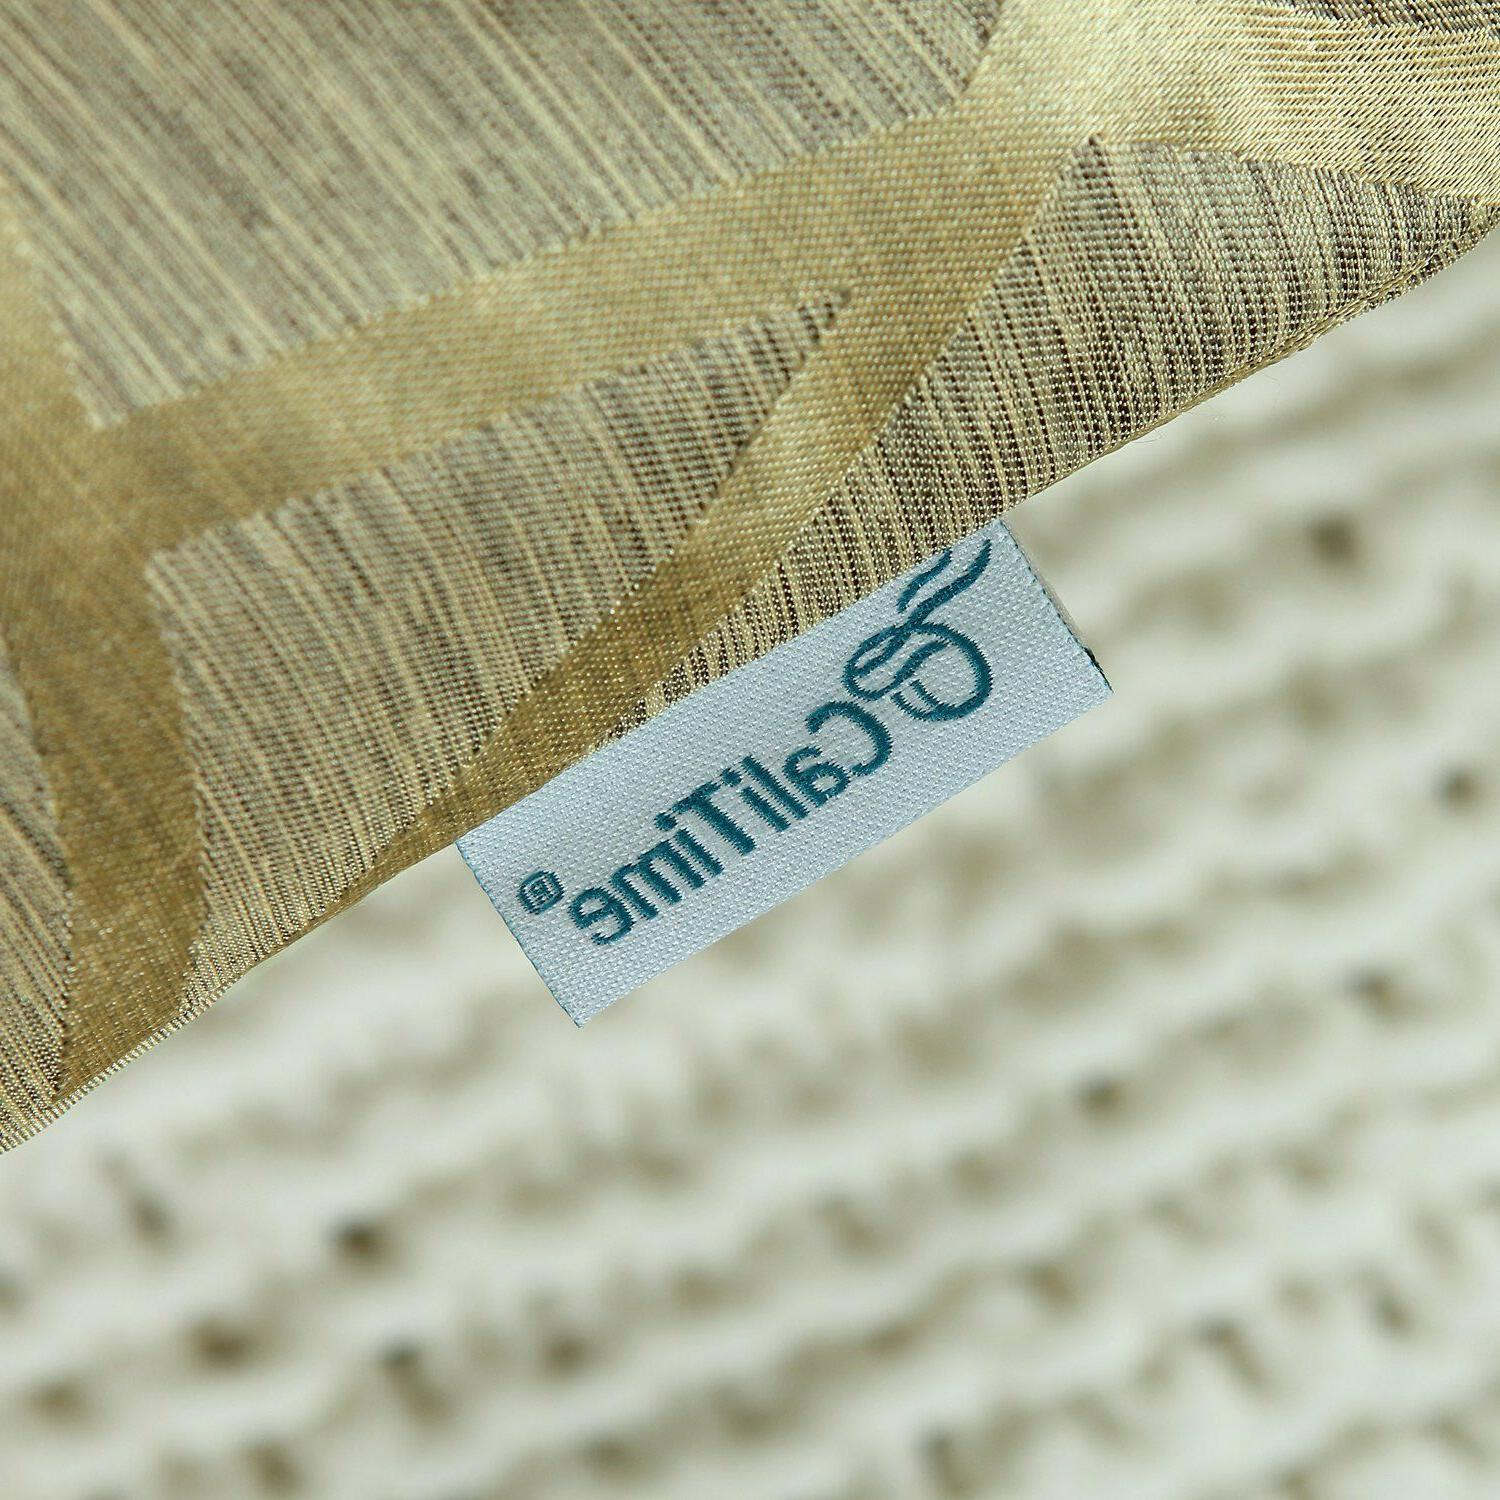 Gold Pillow - Calitime Pack of 2